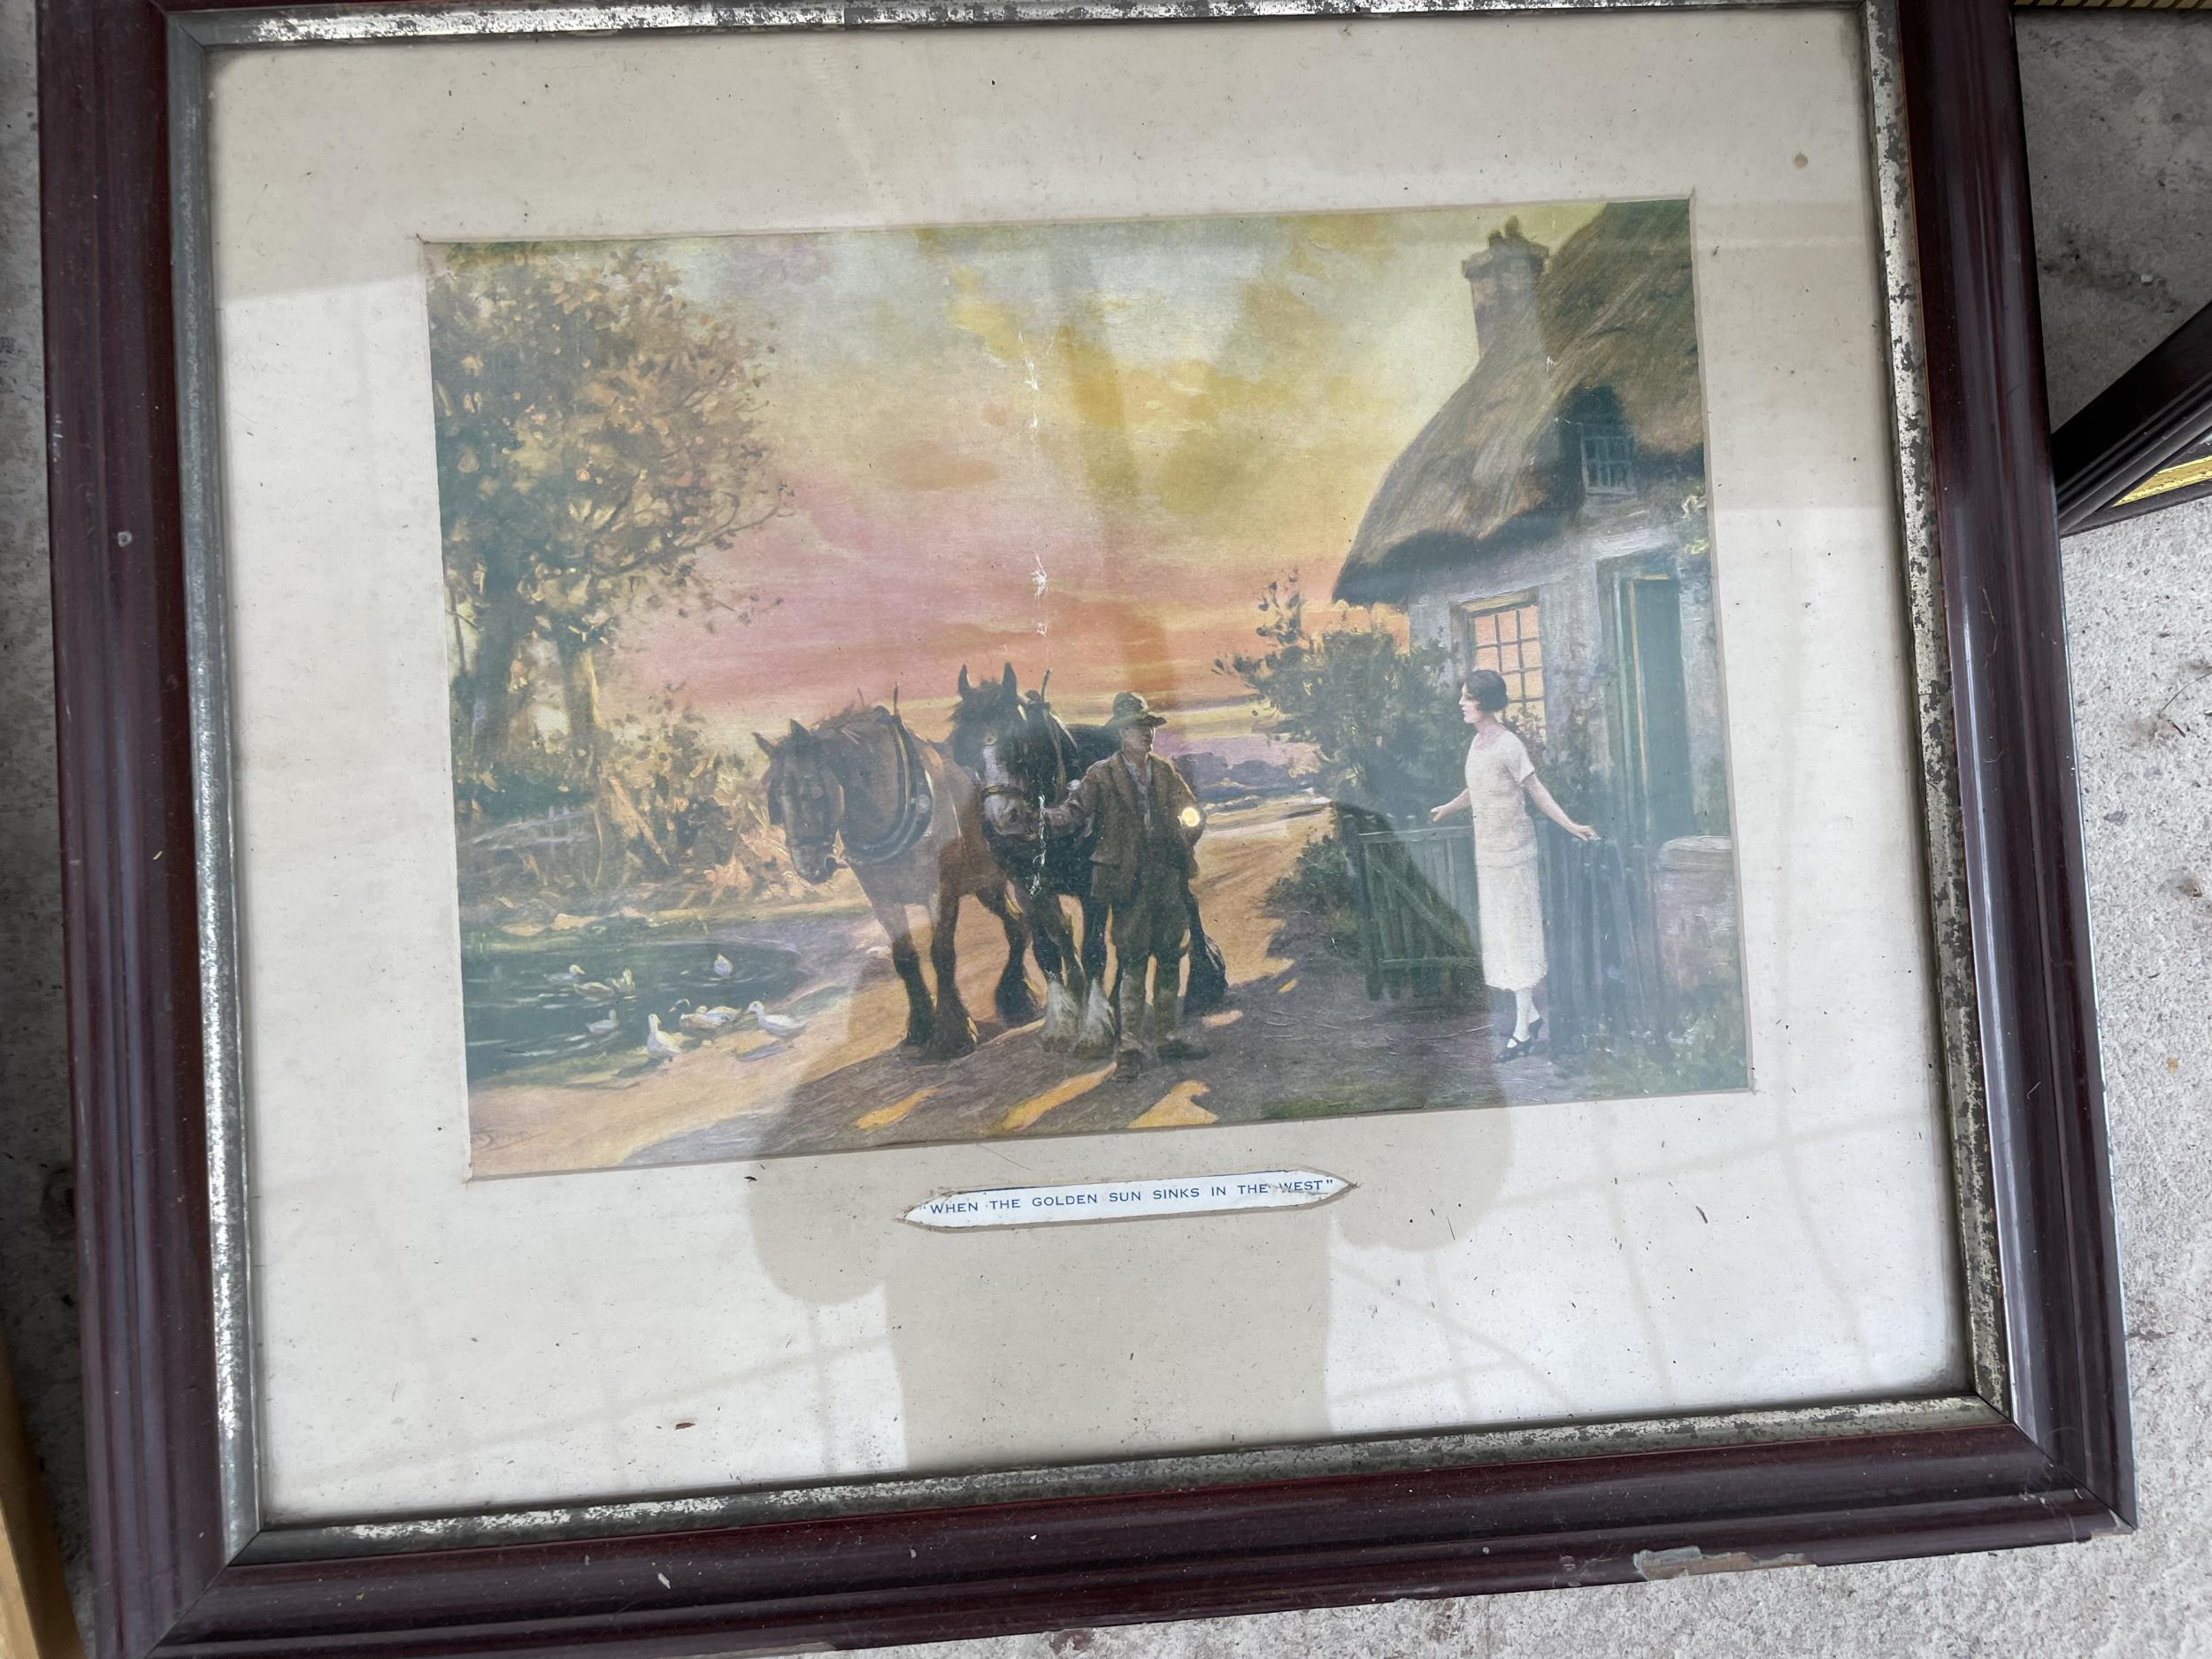 AN ASSORTMENT OF FRAMED PRINTS AND PICTURES - Image 3 of 3